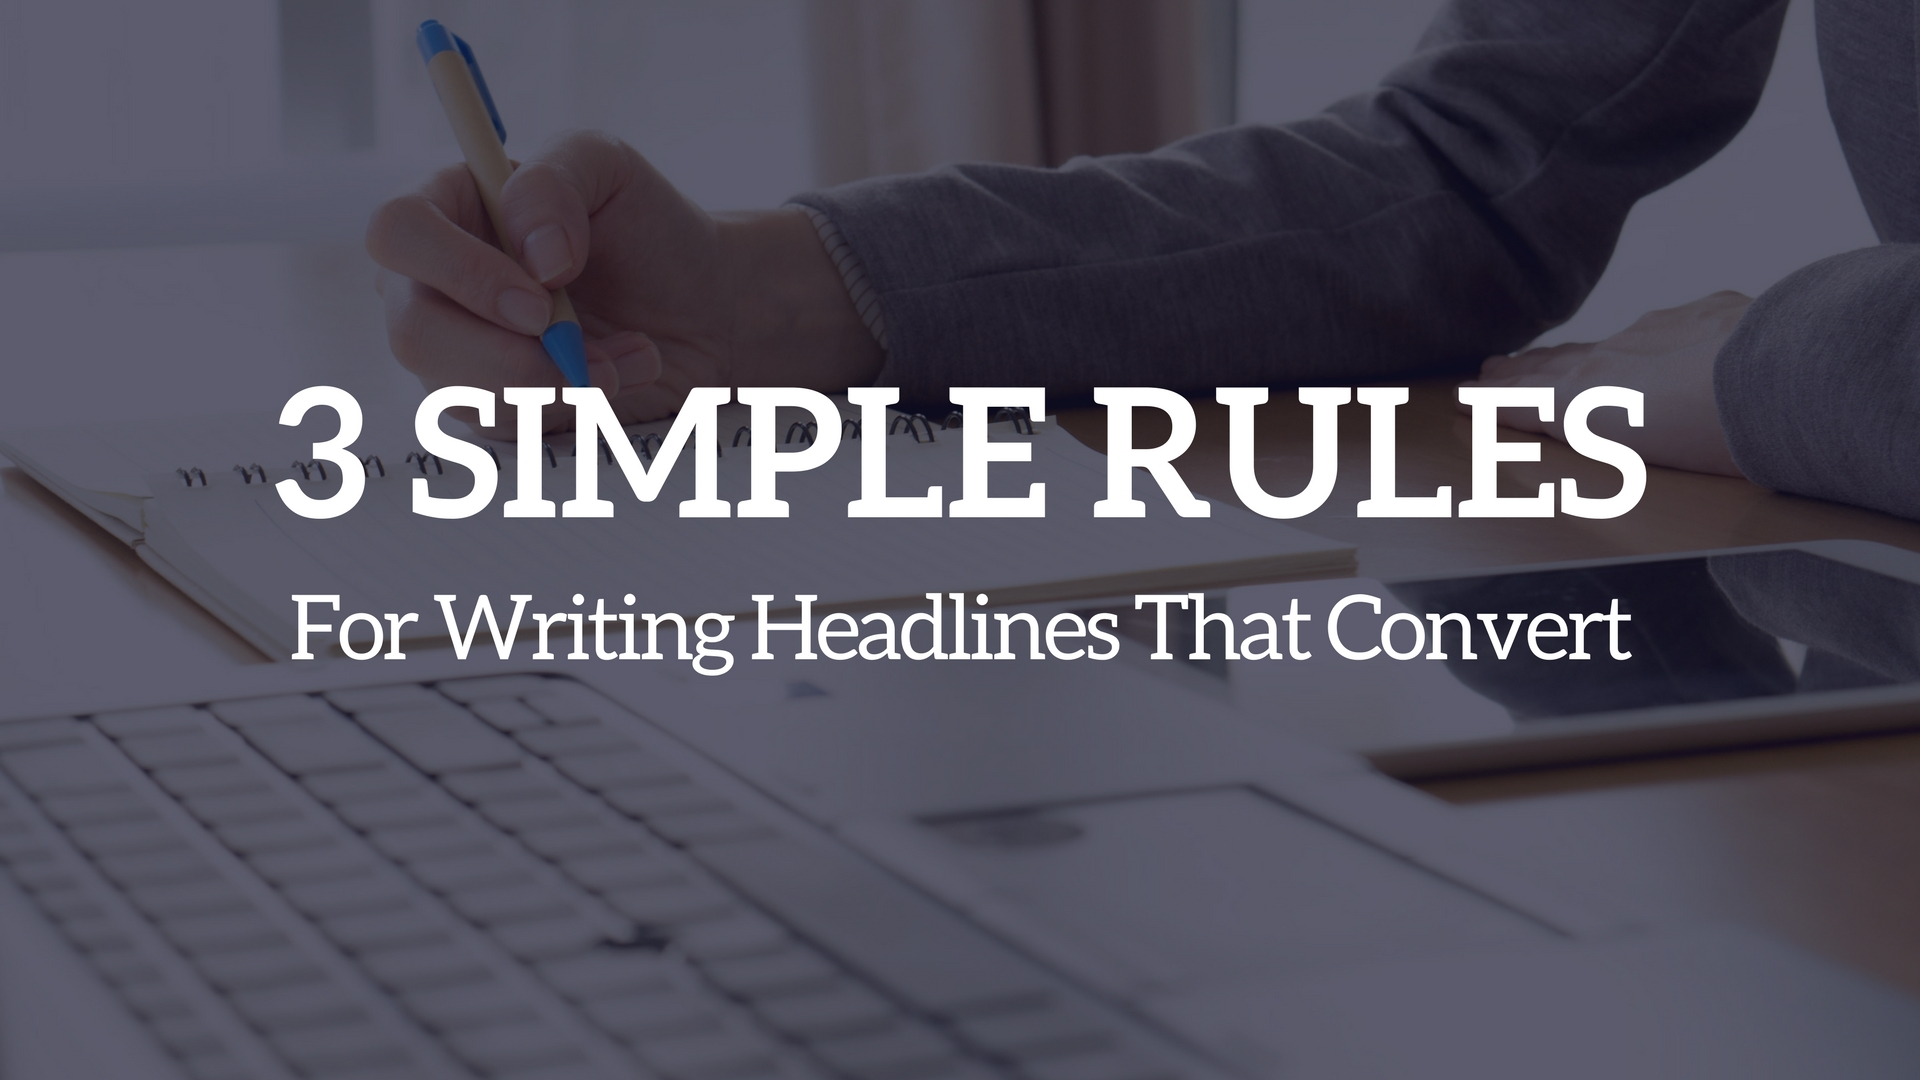 3 Simple Rules for Writing Headlines that Convert